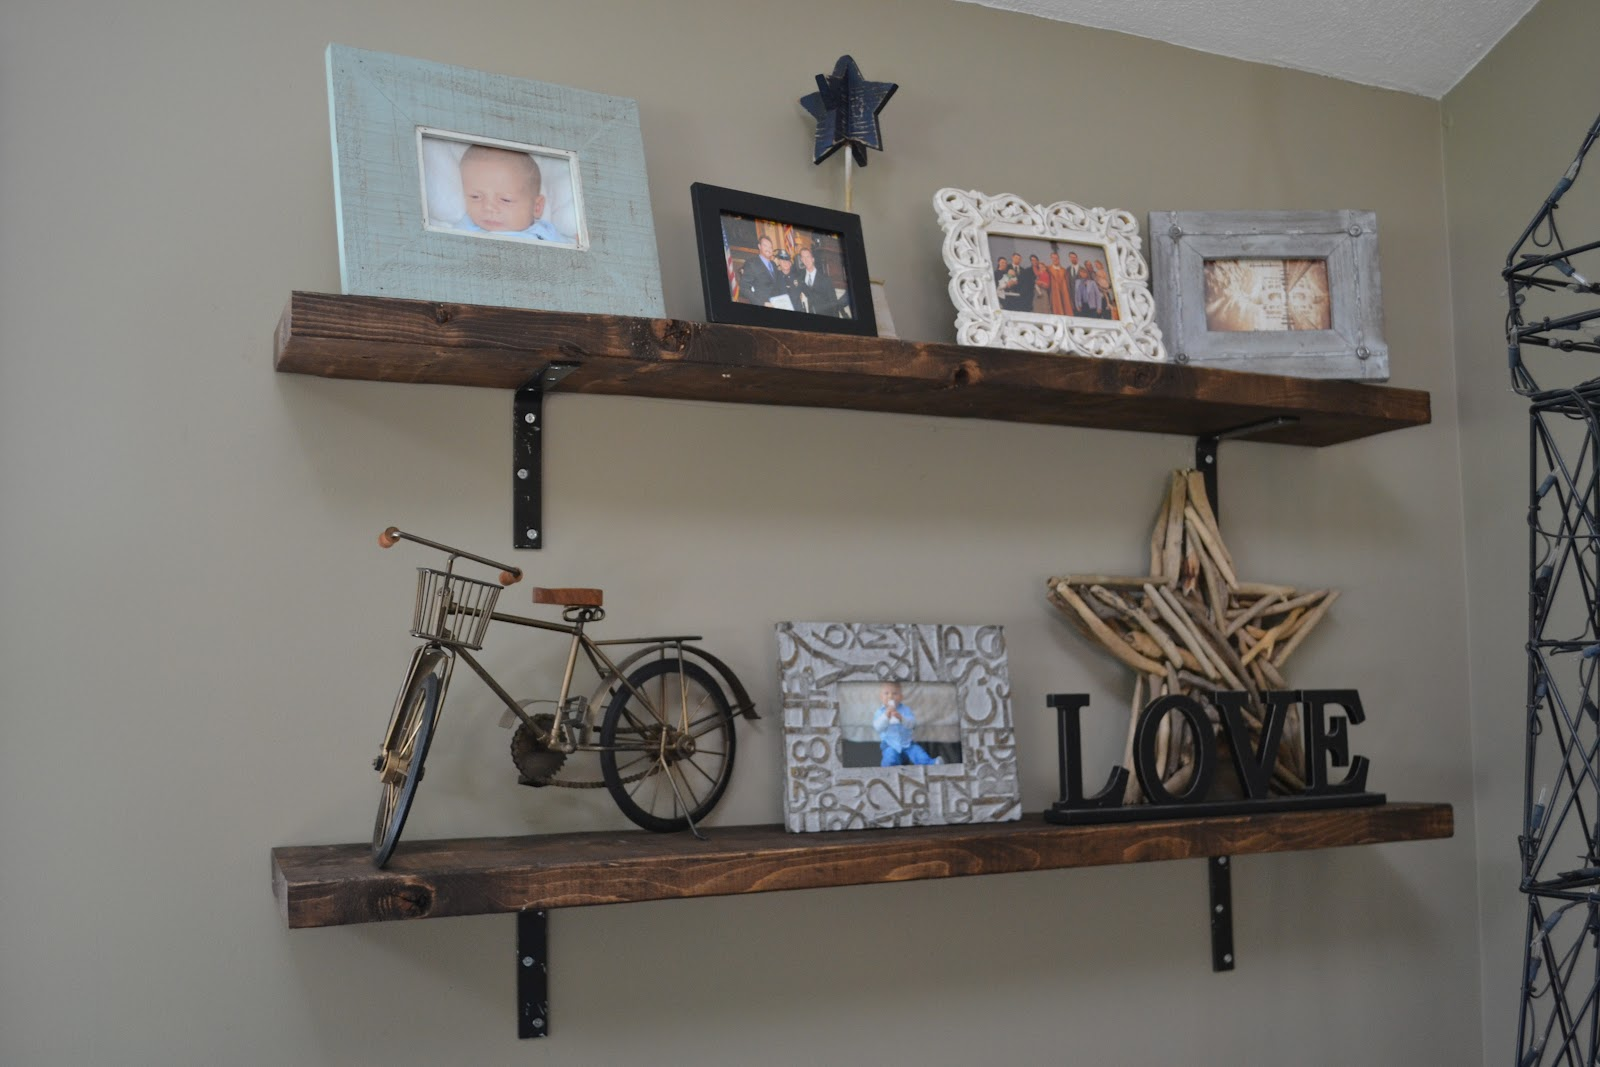 Binkies burlap homemade shelves - Appealing ideas for living room decor ...